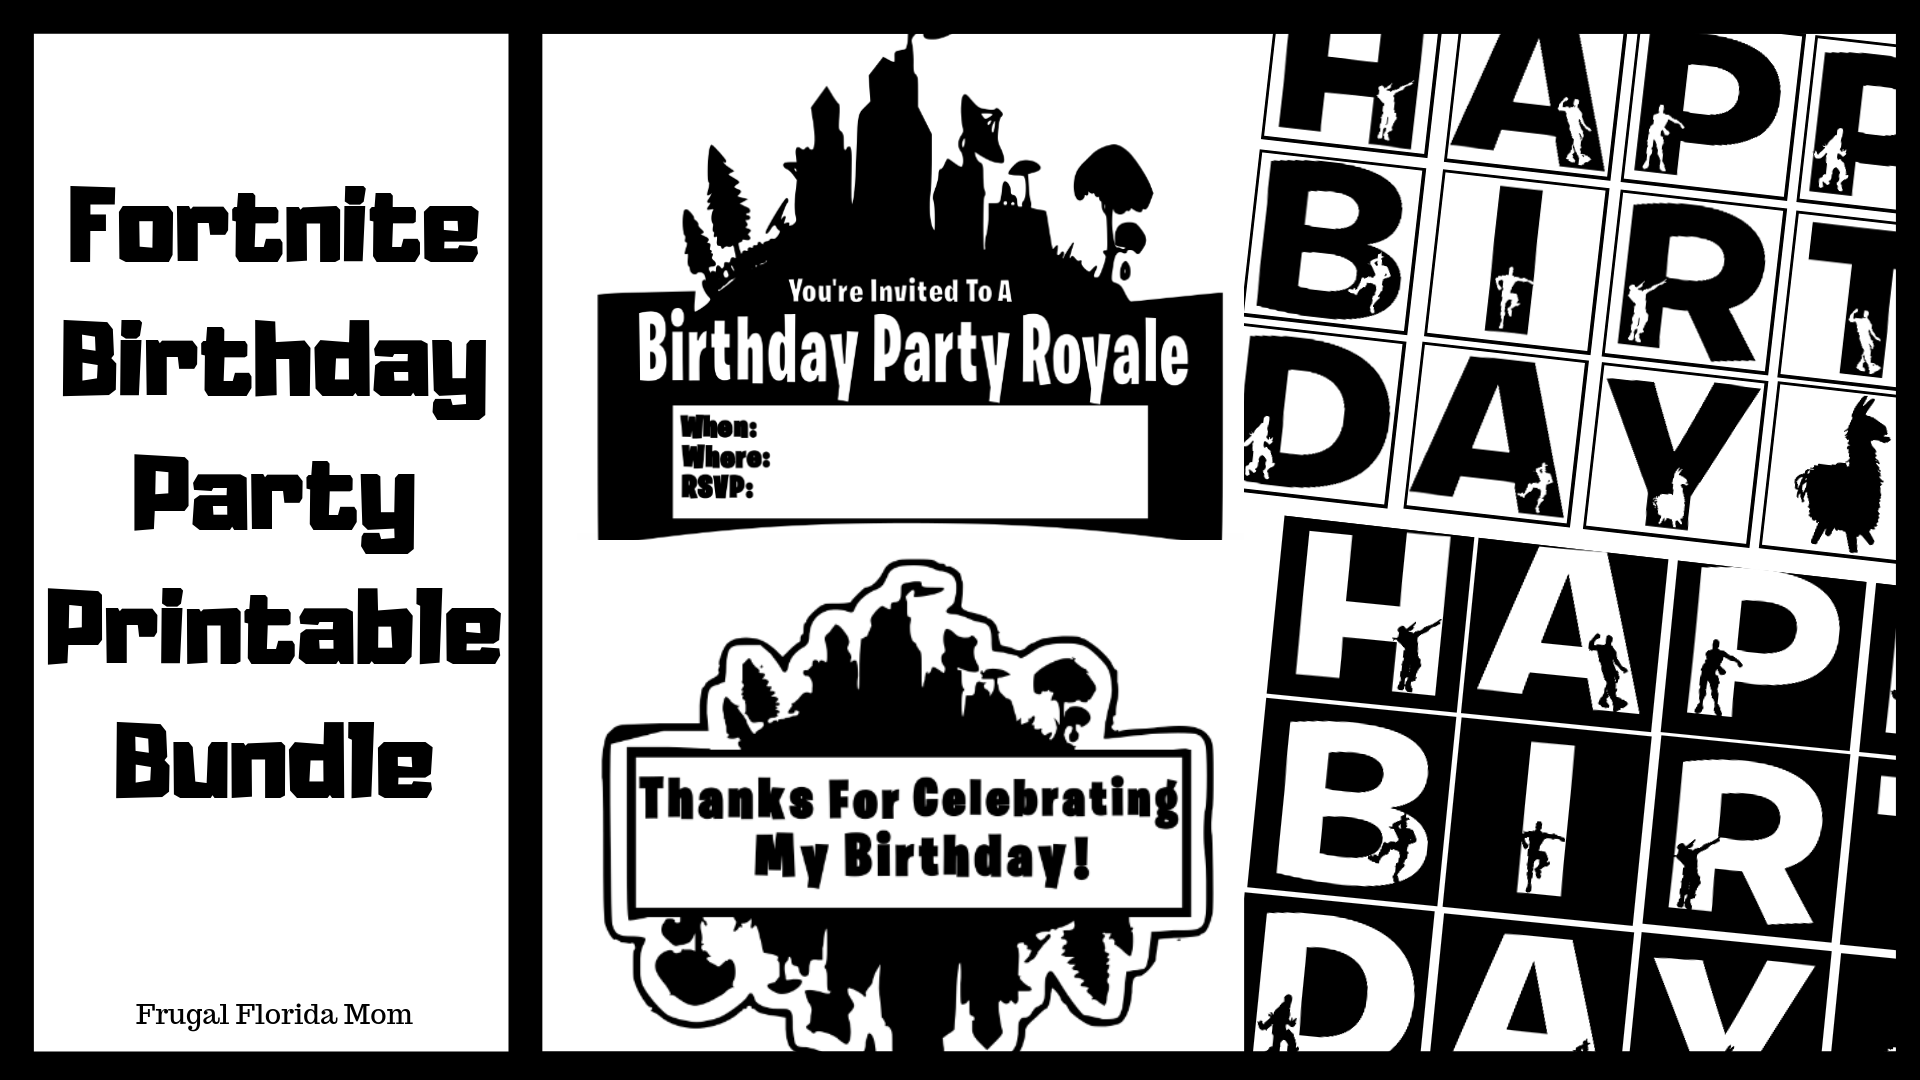 image about Fortnite Logo Printable known as Fortnite Birthday Celebration Guidelines Printables - Frugal Florida Mother